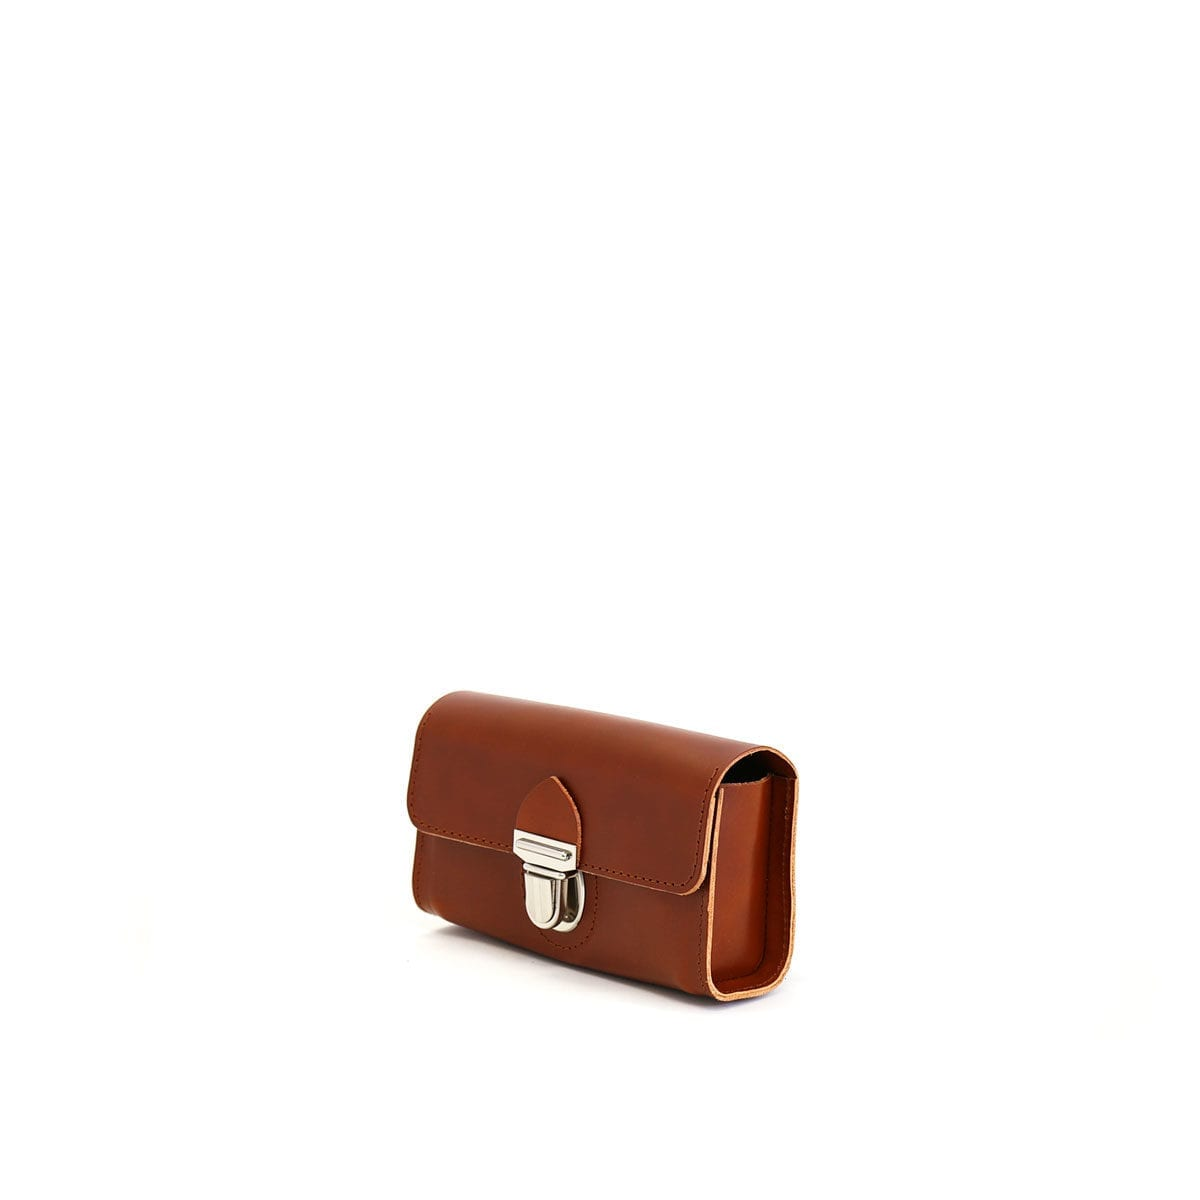 LUMI Kukka Evening Pouch, in cognac, is created using natural vegetable tanned cow leather